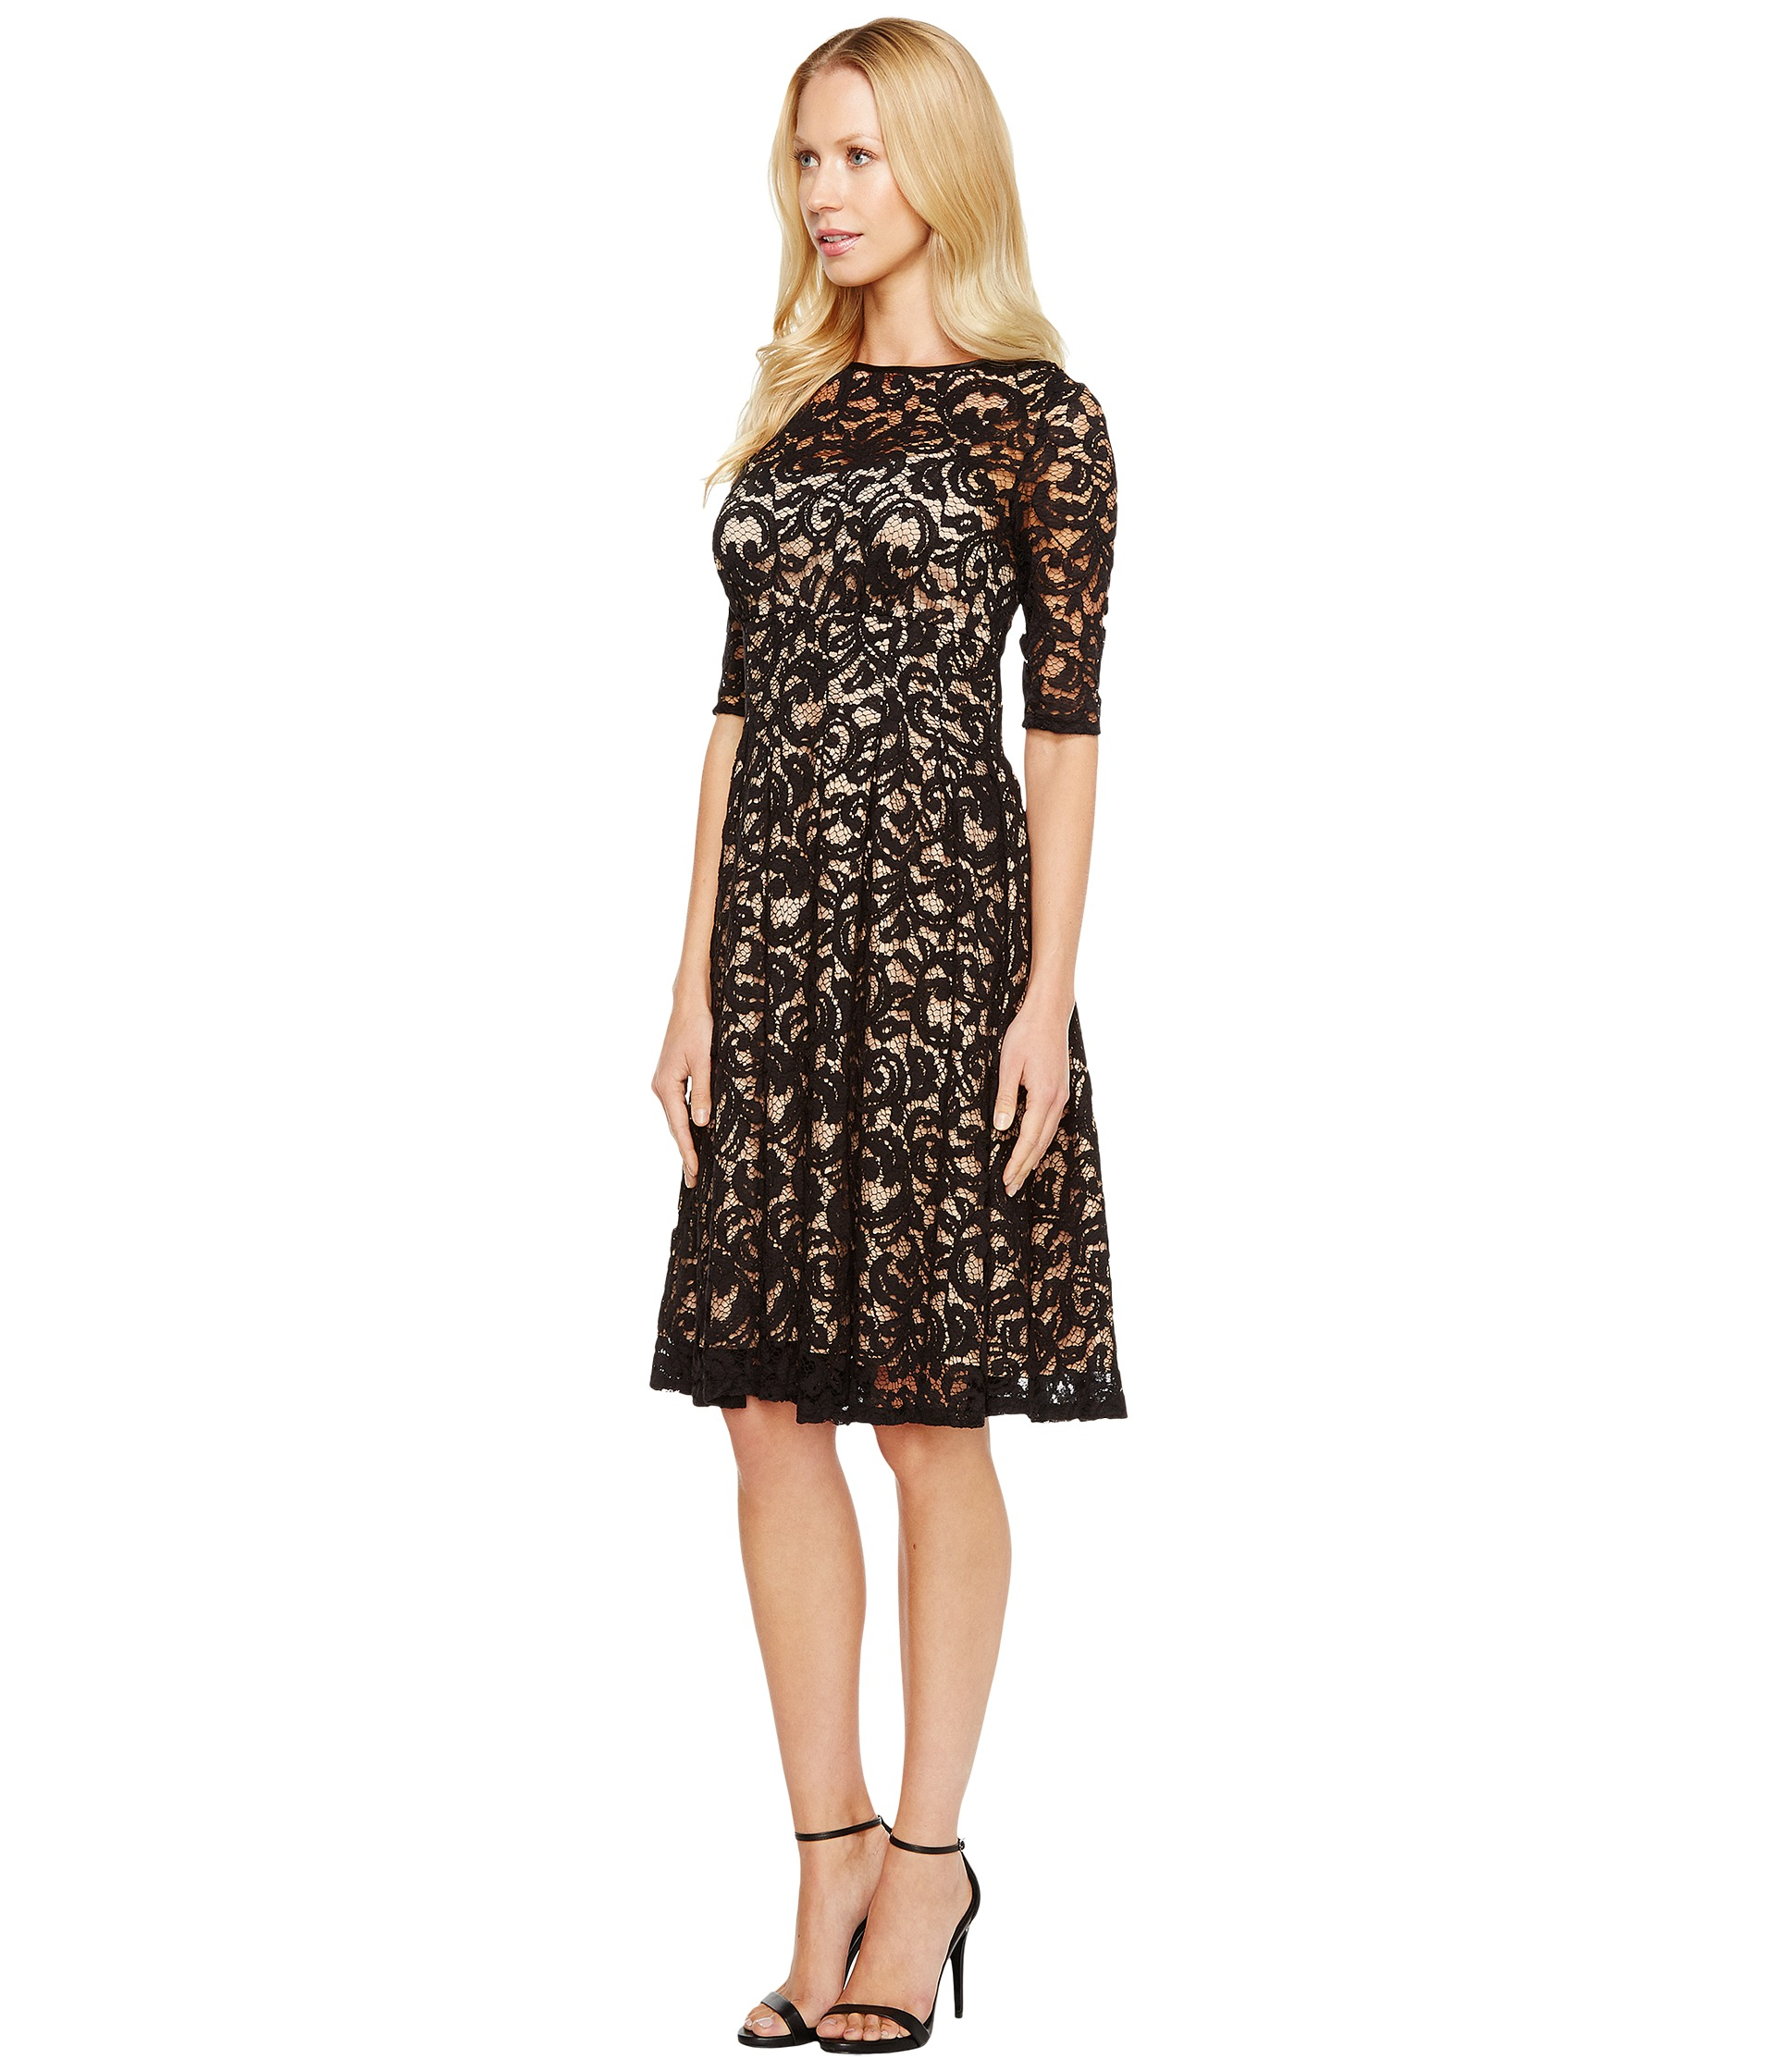 Lace Dresses With Sleeves: Adrianna Papell 3/4 Sleeve All Over Lace Dress At Zappos.com